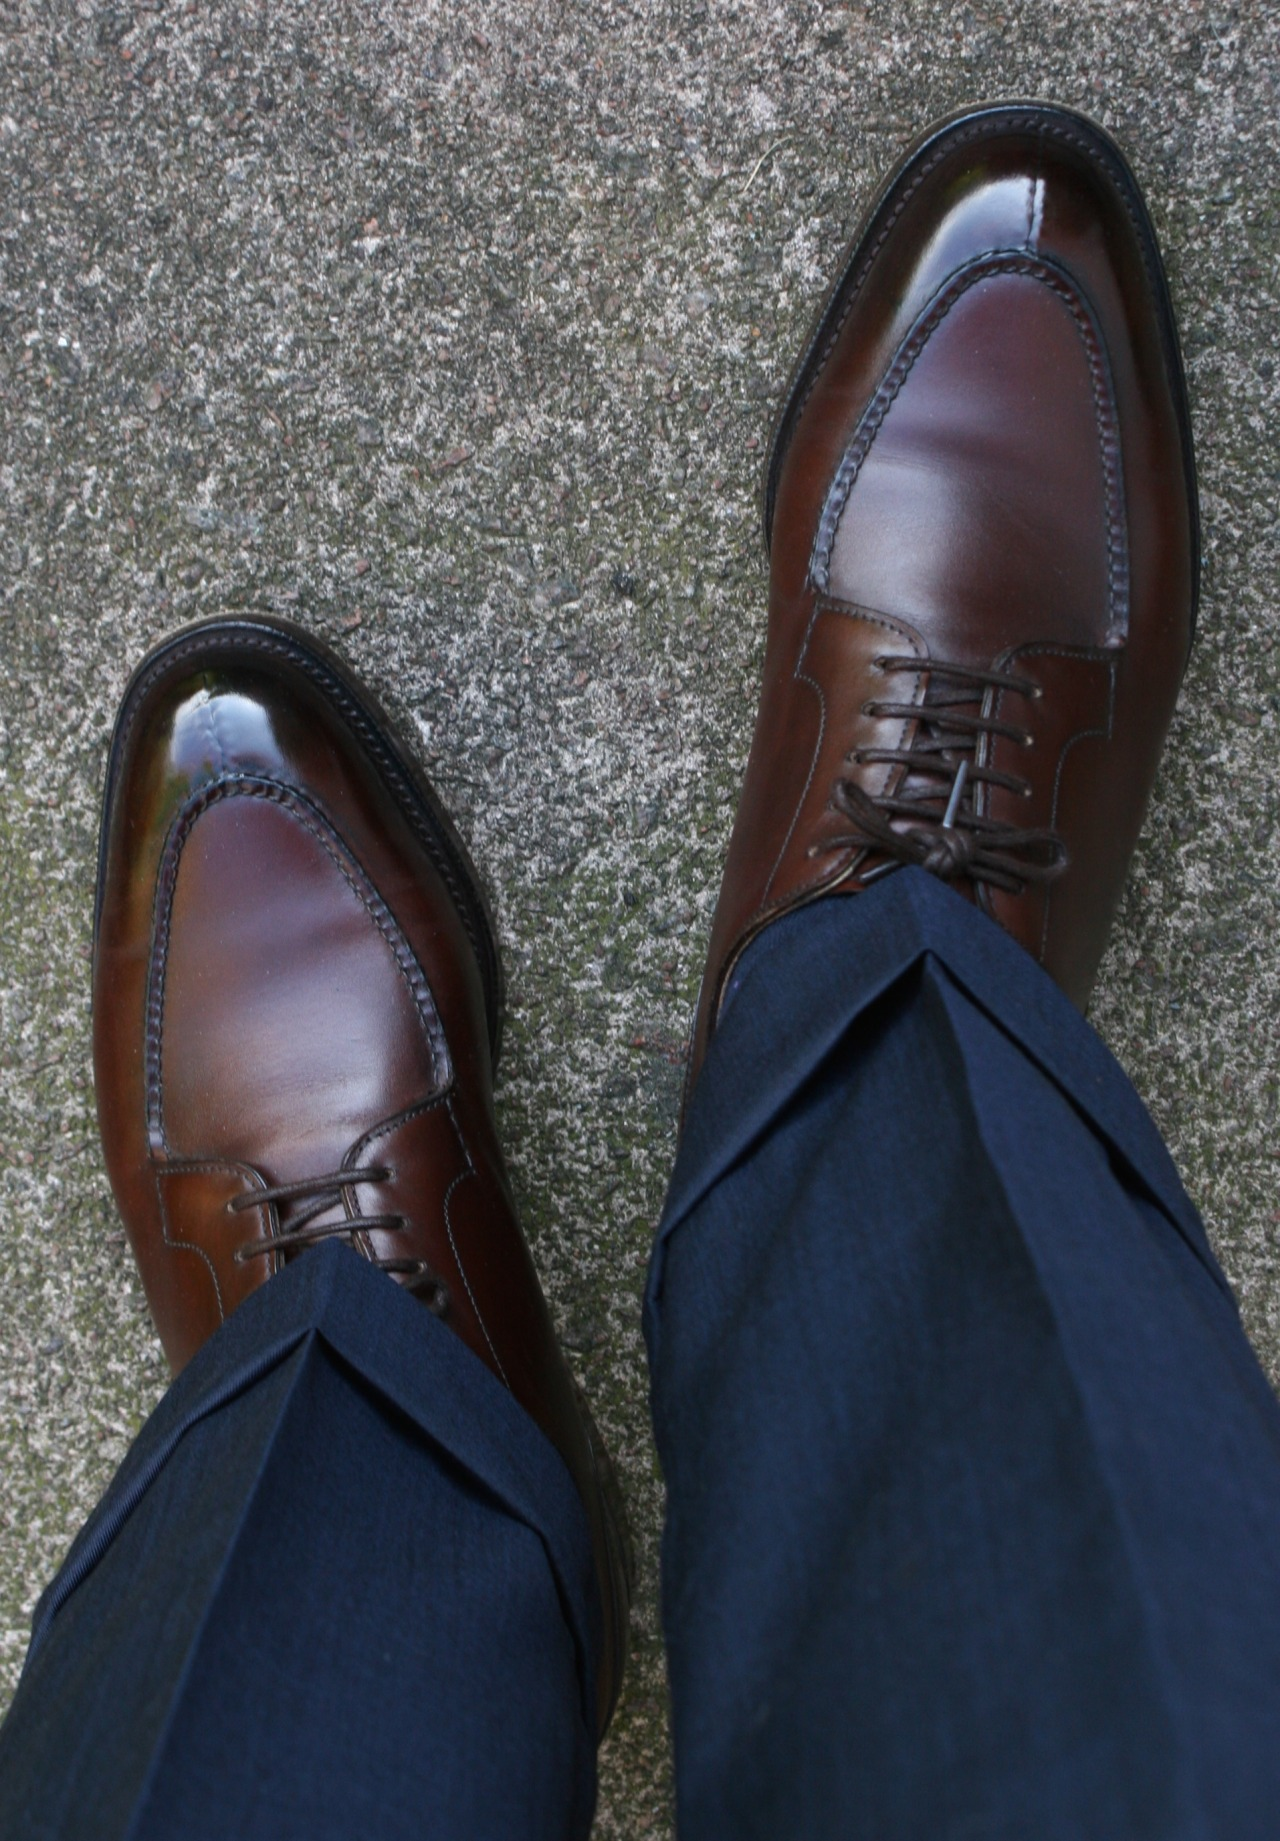 John Lobb Shoes >> Five Shoe Styles I've Found Useful -- and You May Too – Put This On